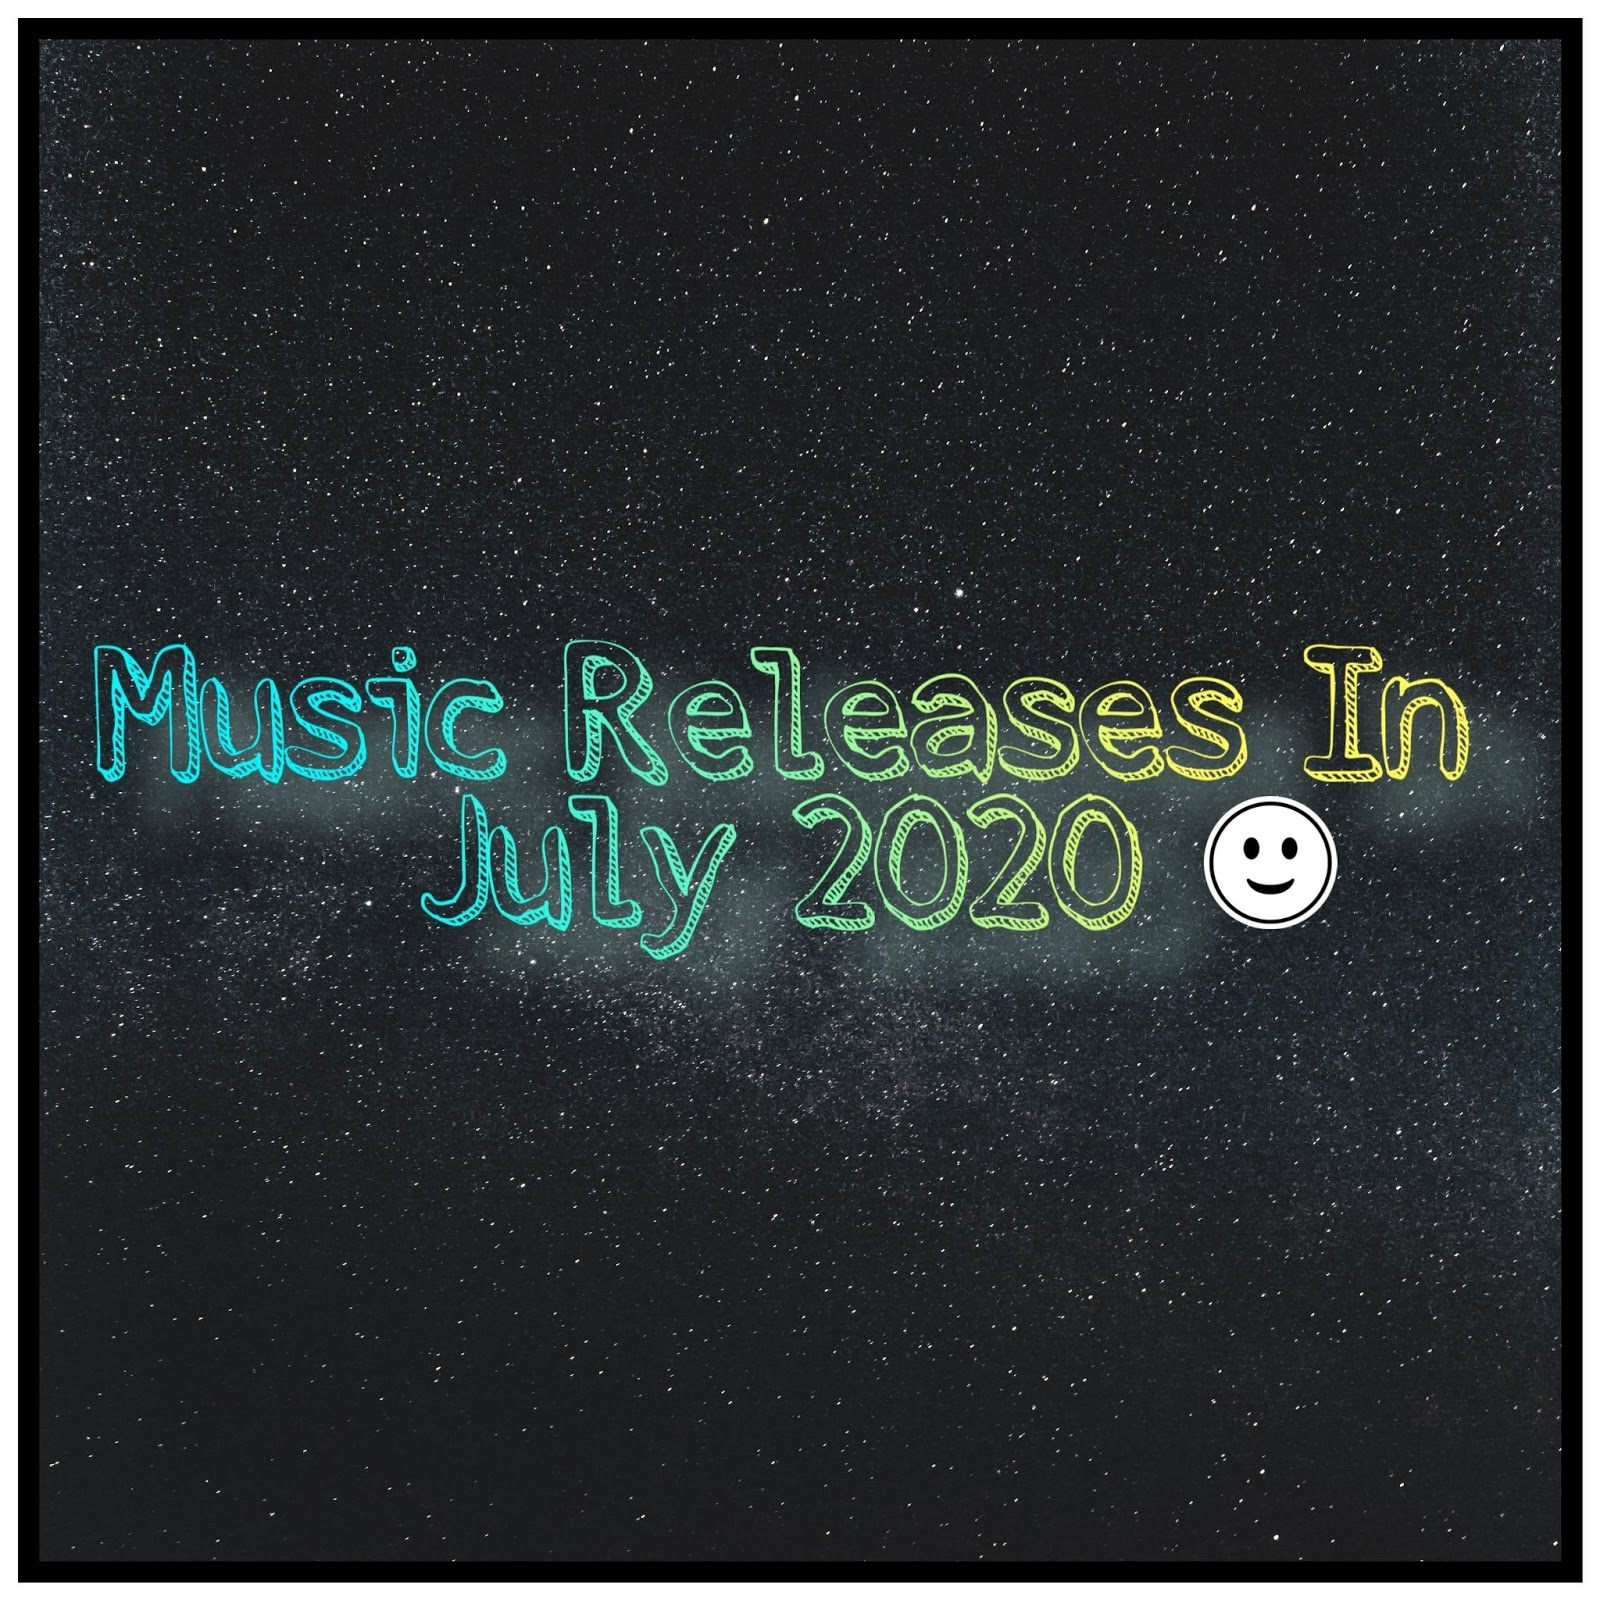 Music Releases In July 2020